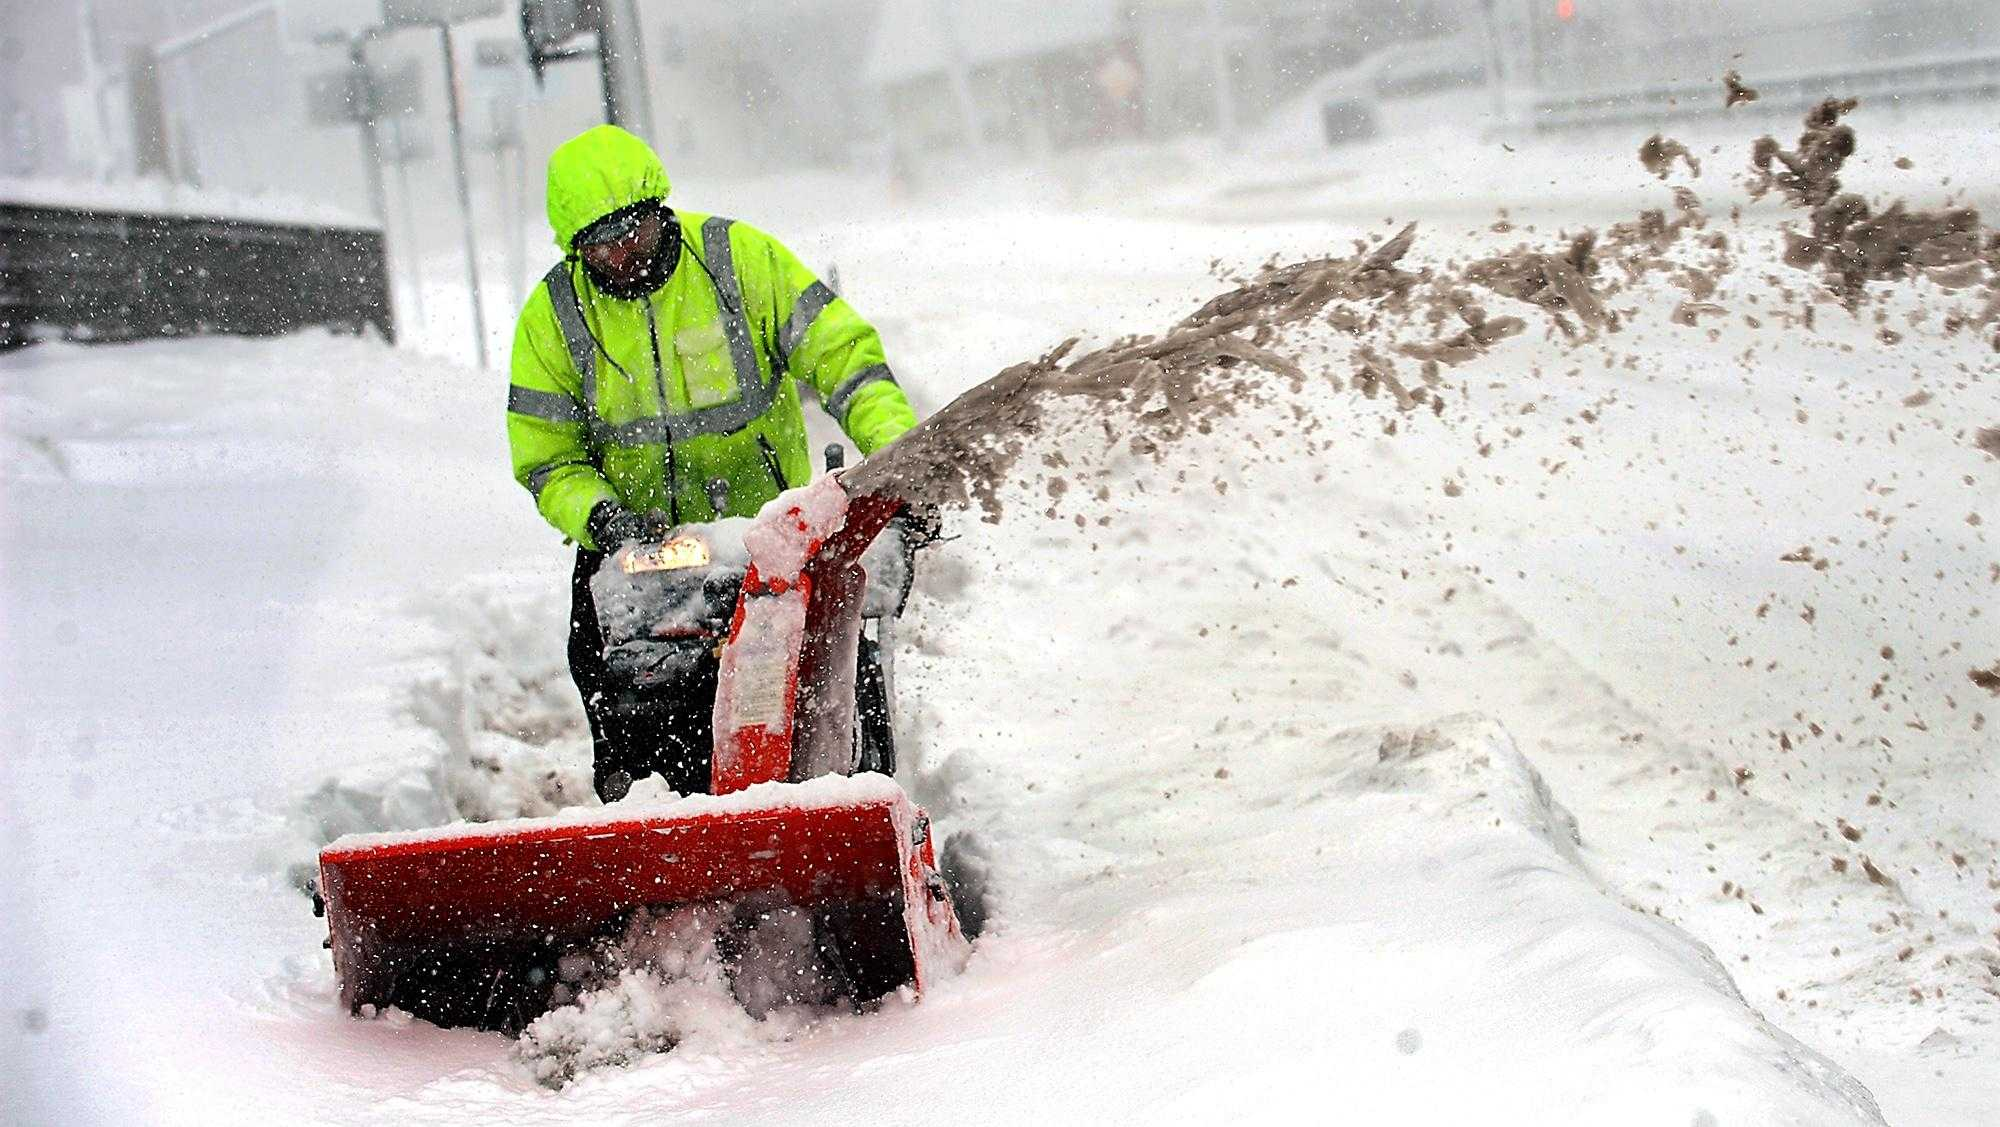 A worker from Maple and Clover Landscaping in Framingham struggles to clear snow at 5 Egell Road in Framingham Centre during Tuesday's nor'easter.